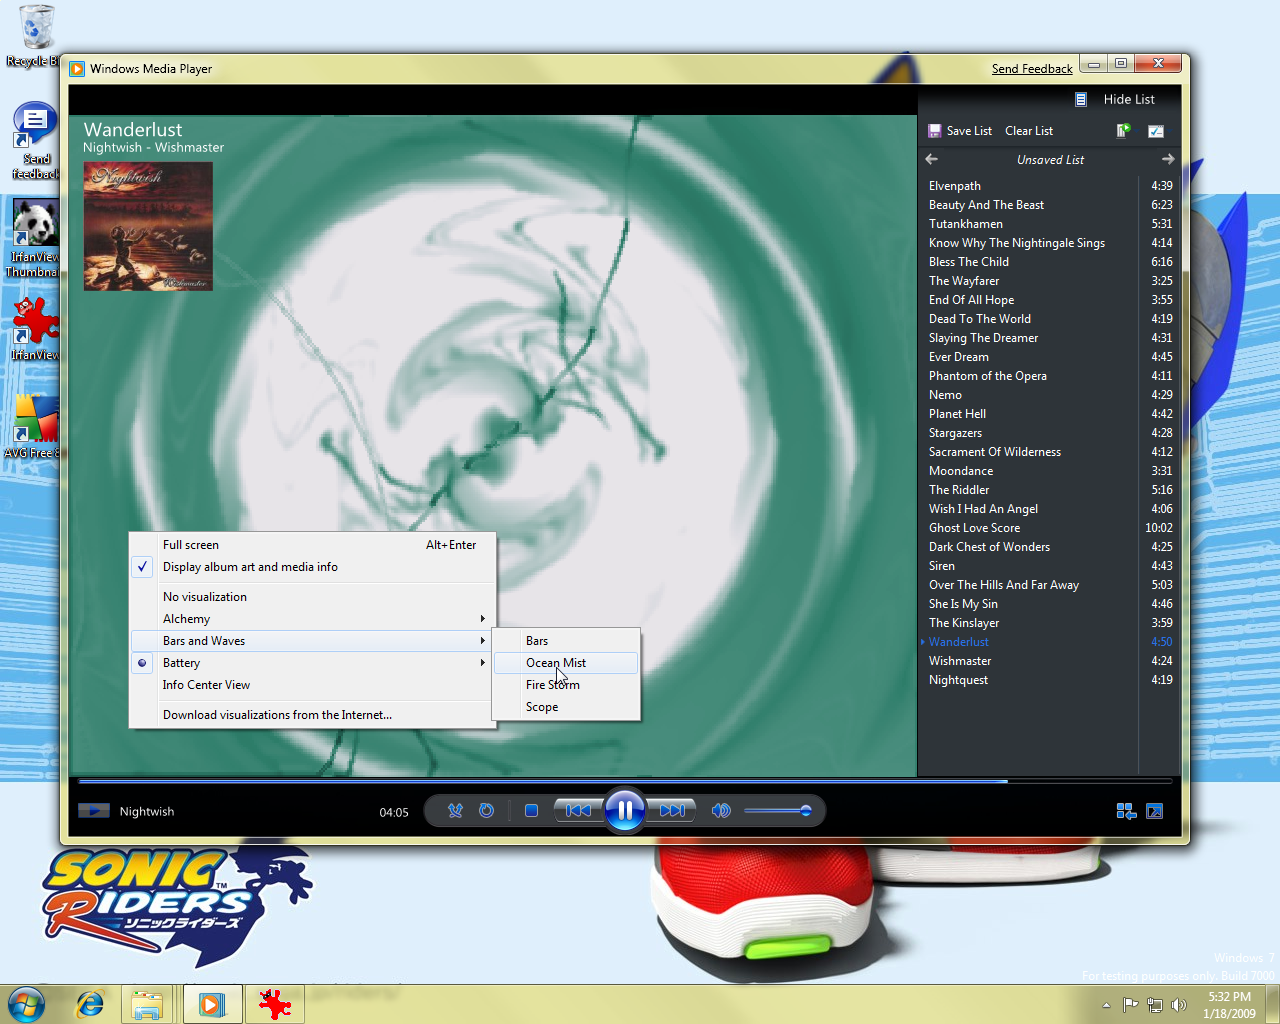 Windows media player 12 for windows 10 n & kn editions.